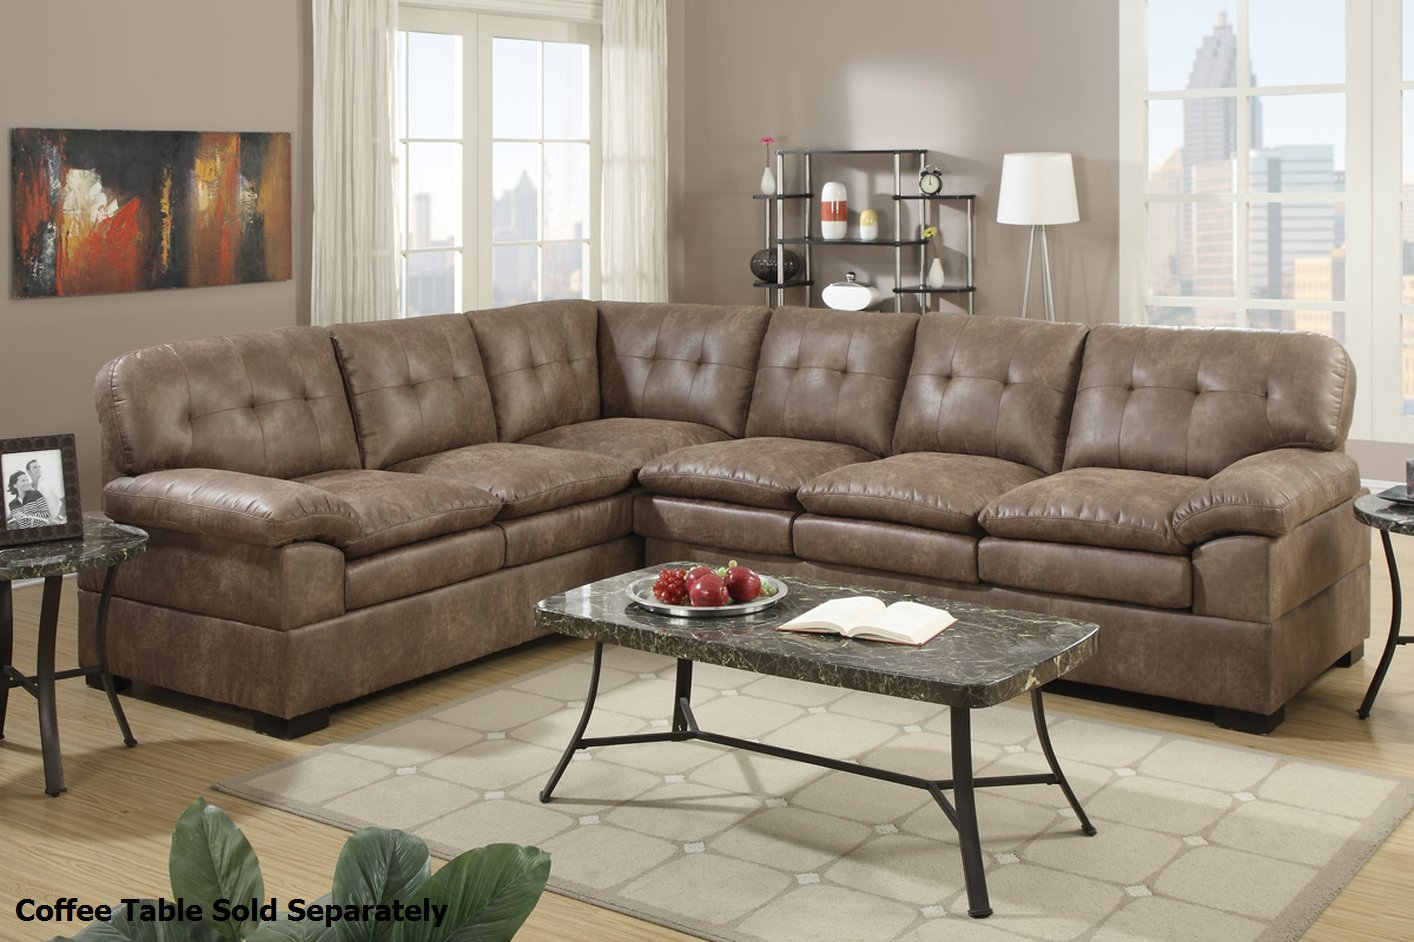 tyson sectional sofa erska sleeper review brown fabric steal a furniture